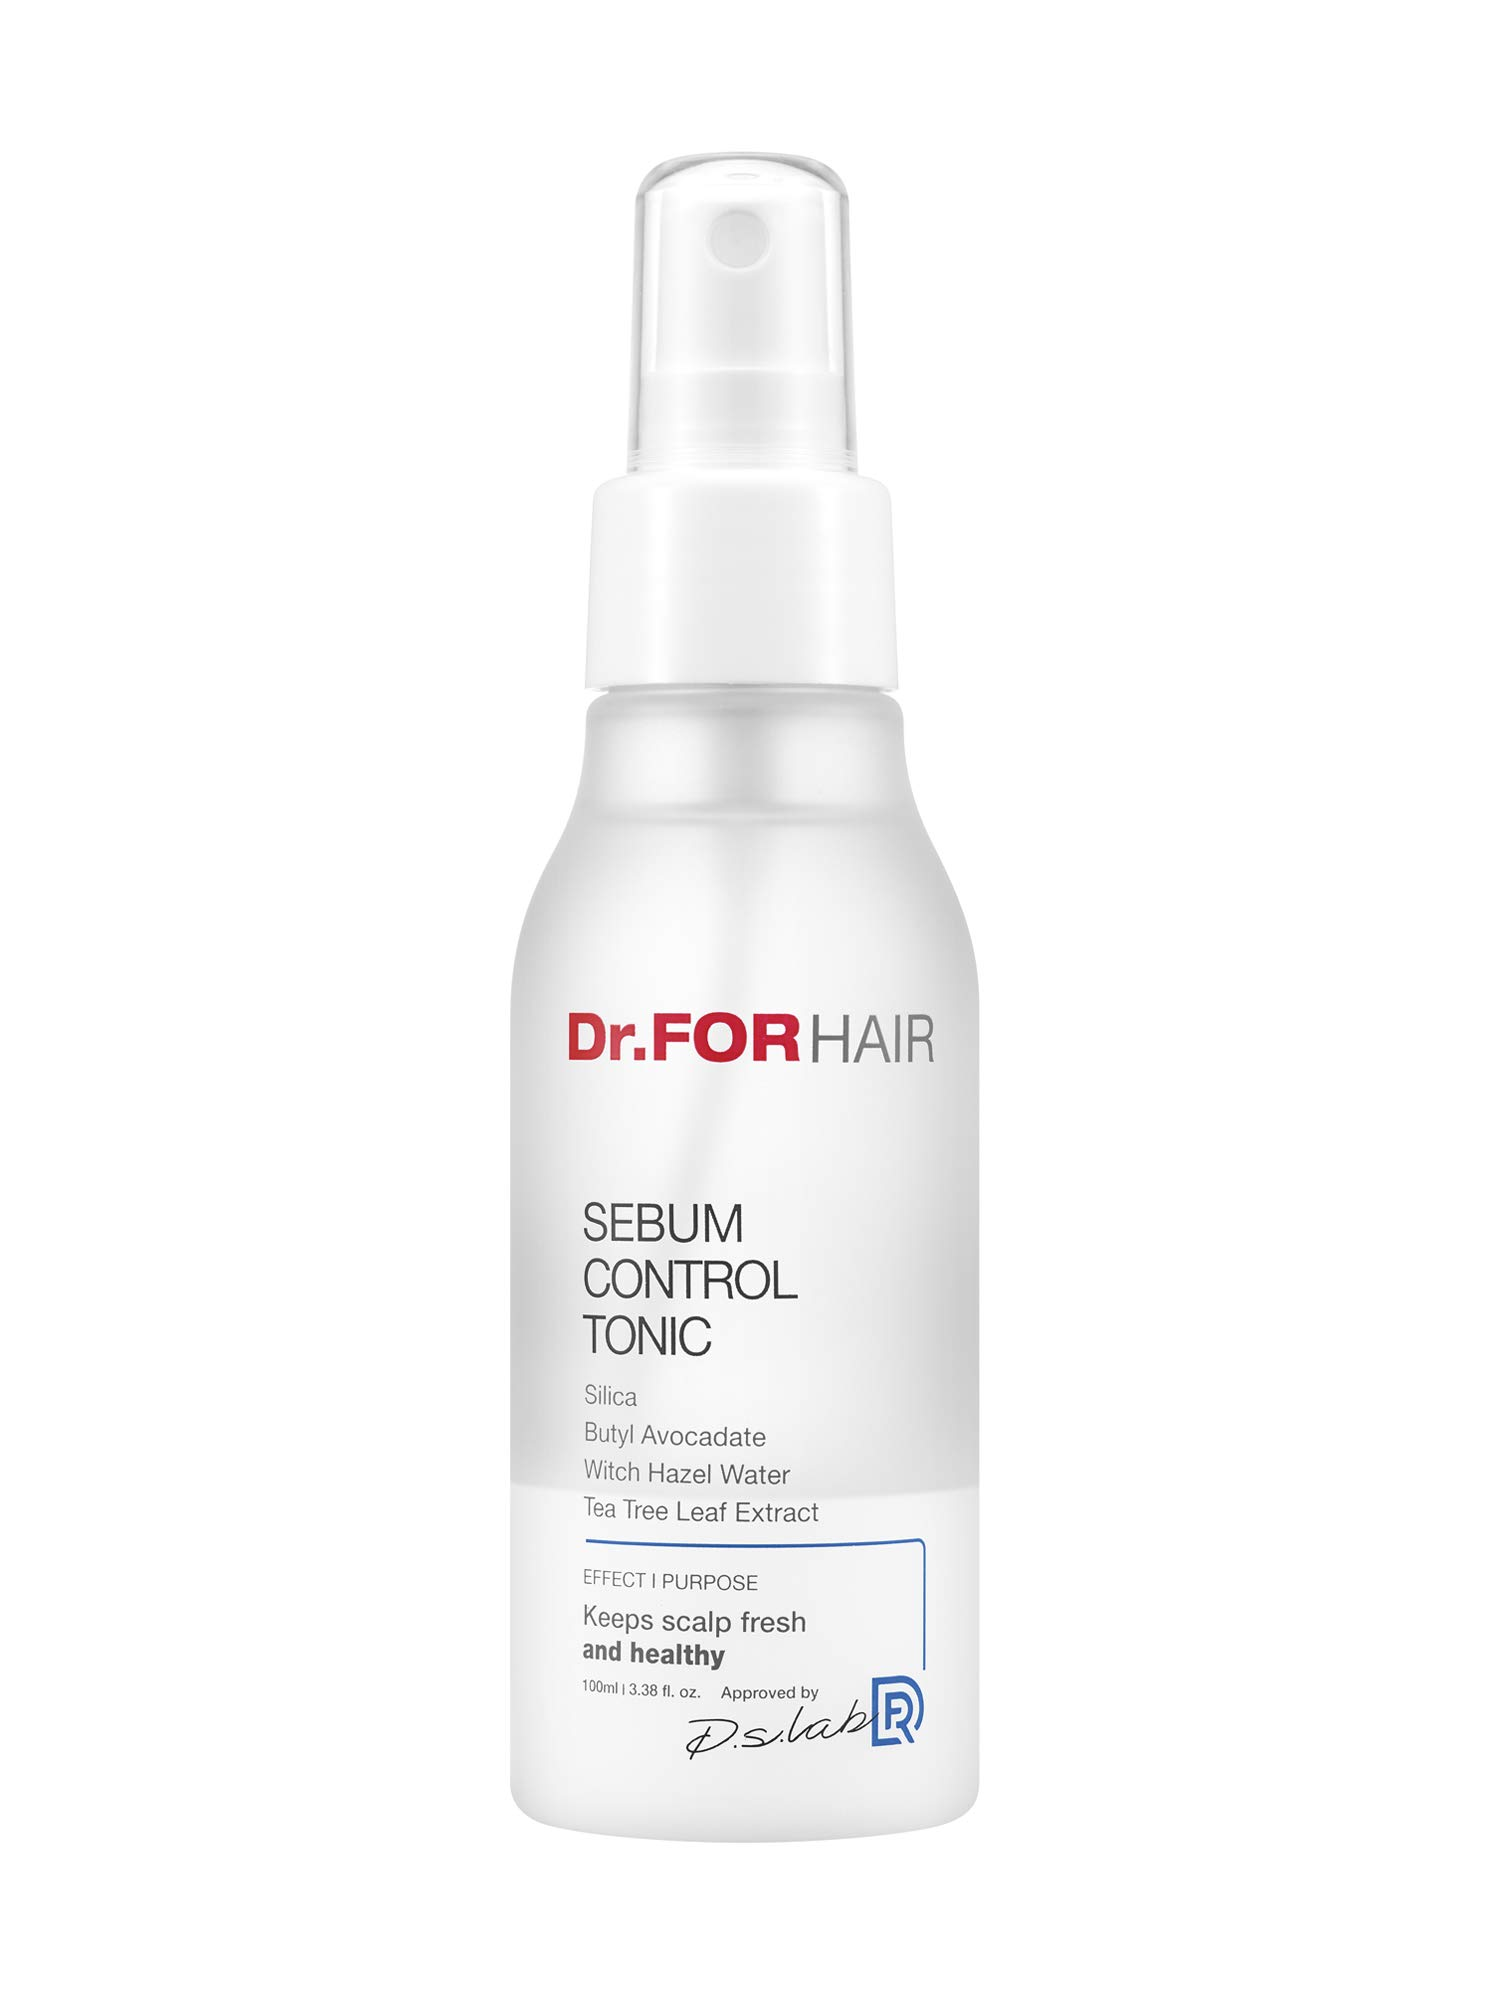 [Dr.FORHAIR] Sebum Control Tonic 100 ml/3.38 fl.oz by Dr.ForHair